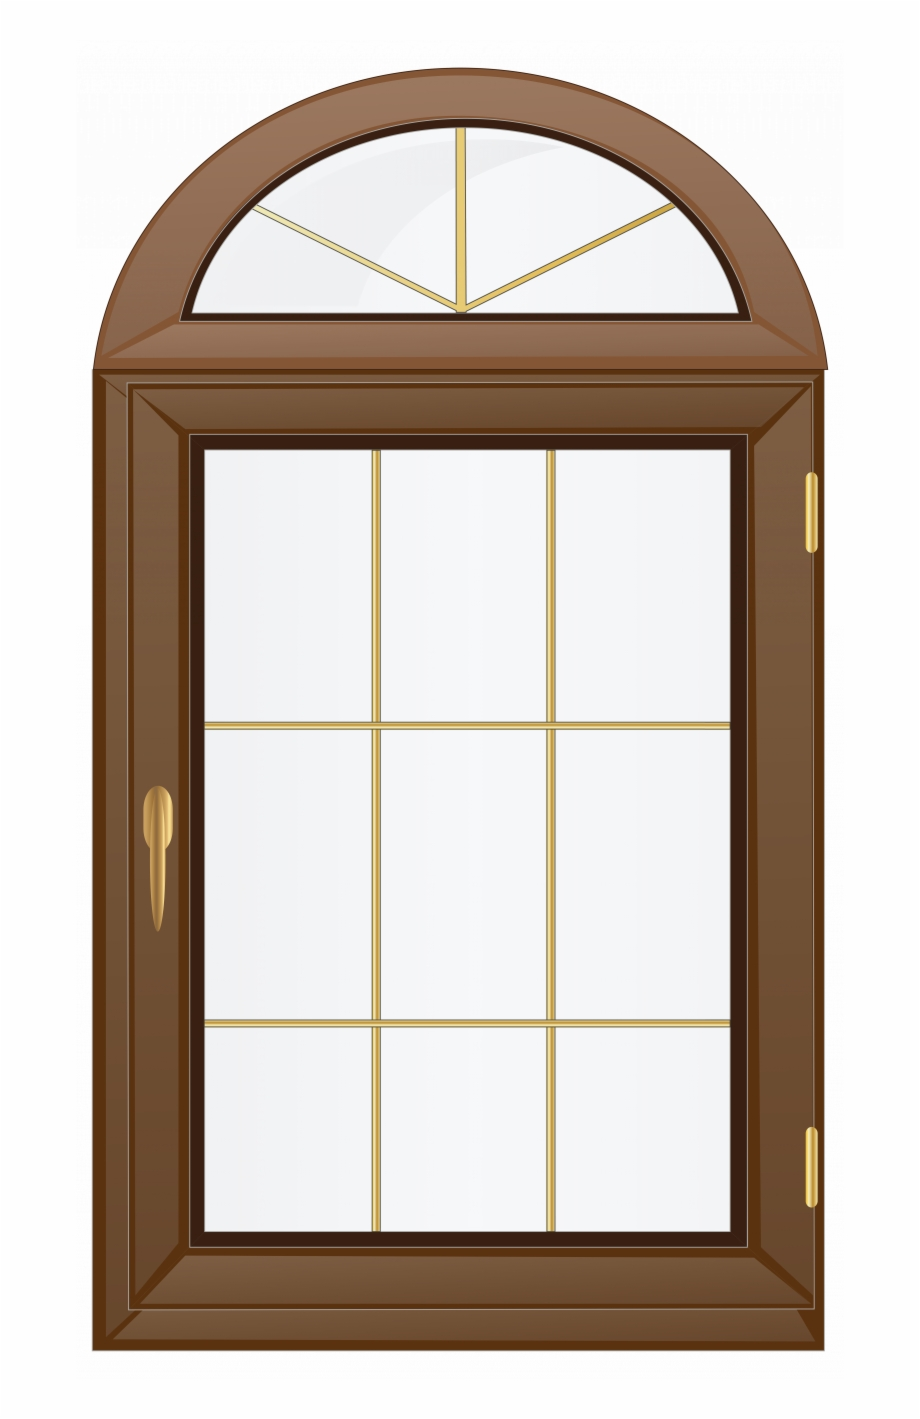 Curtain clipart gingerbread house window. Curtains closed